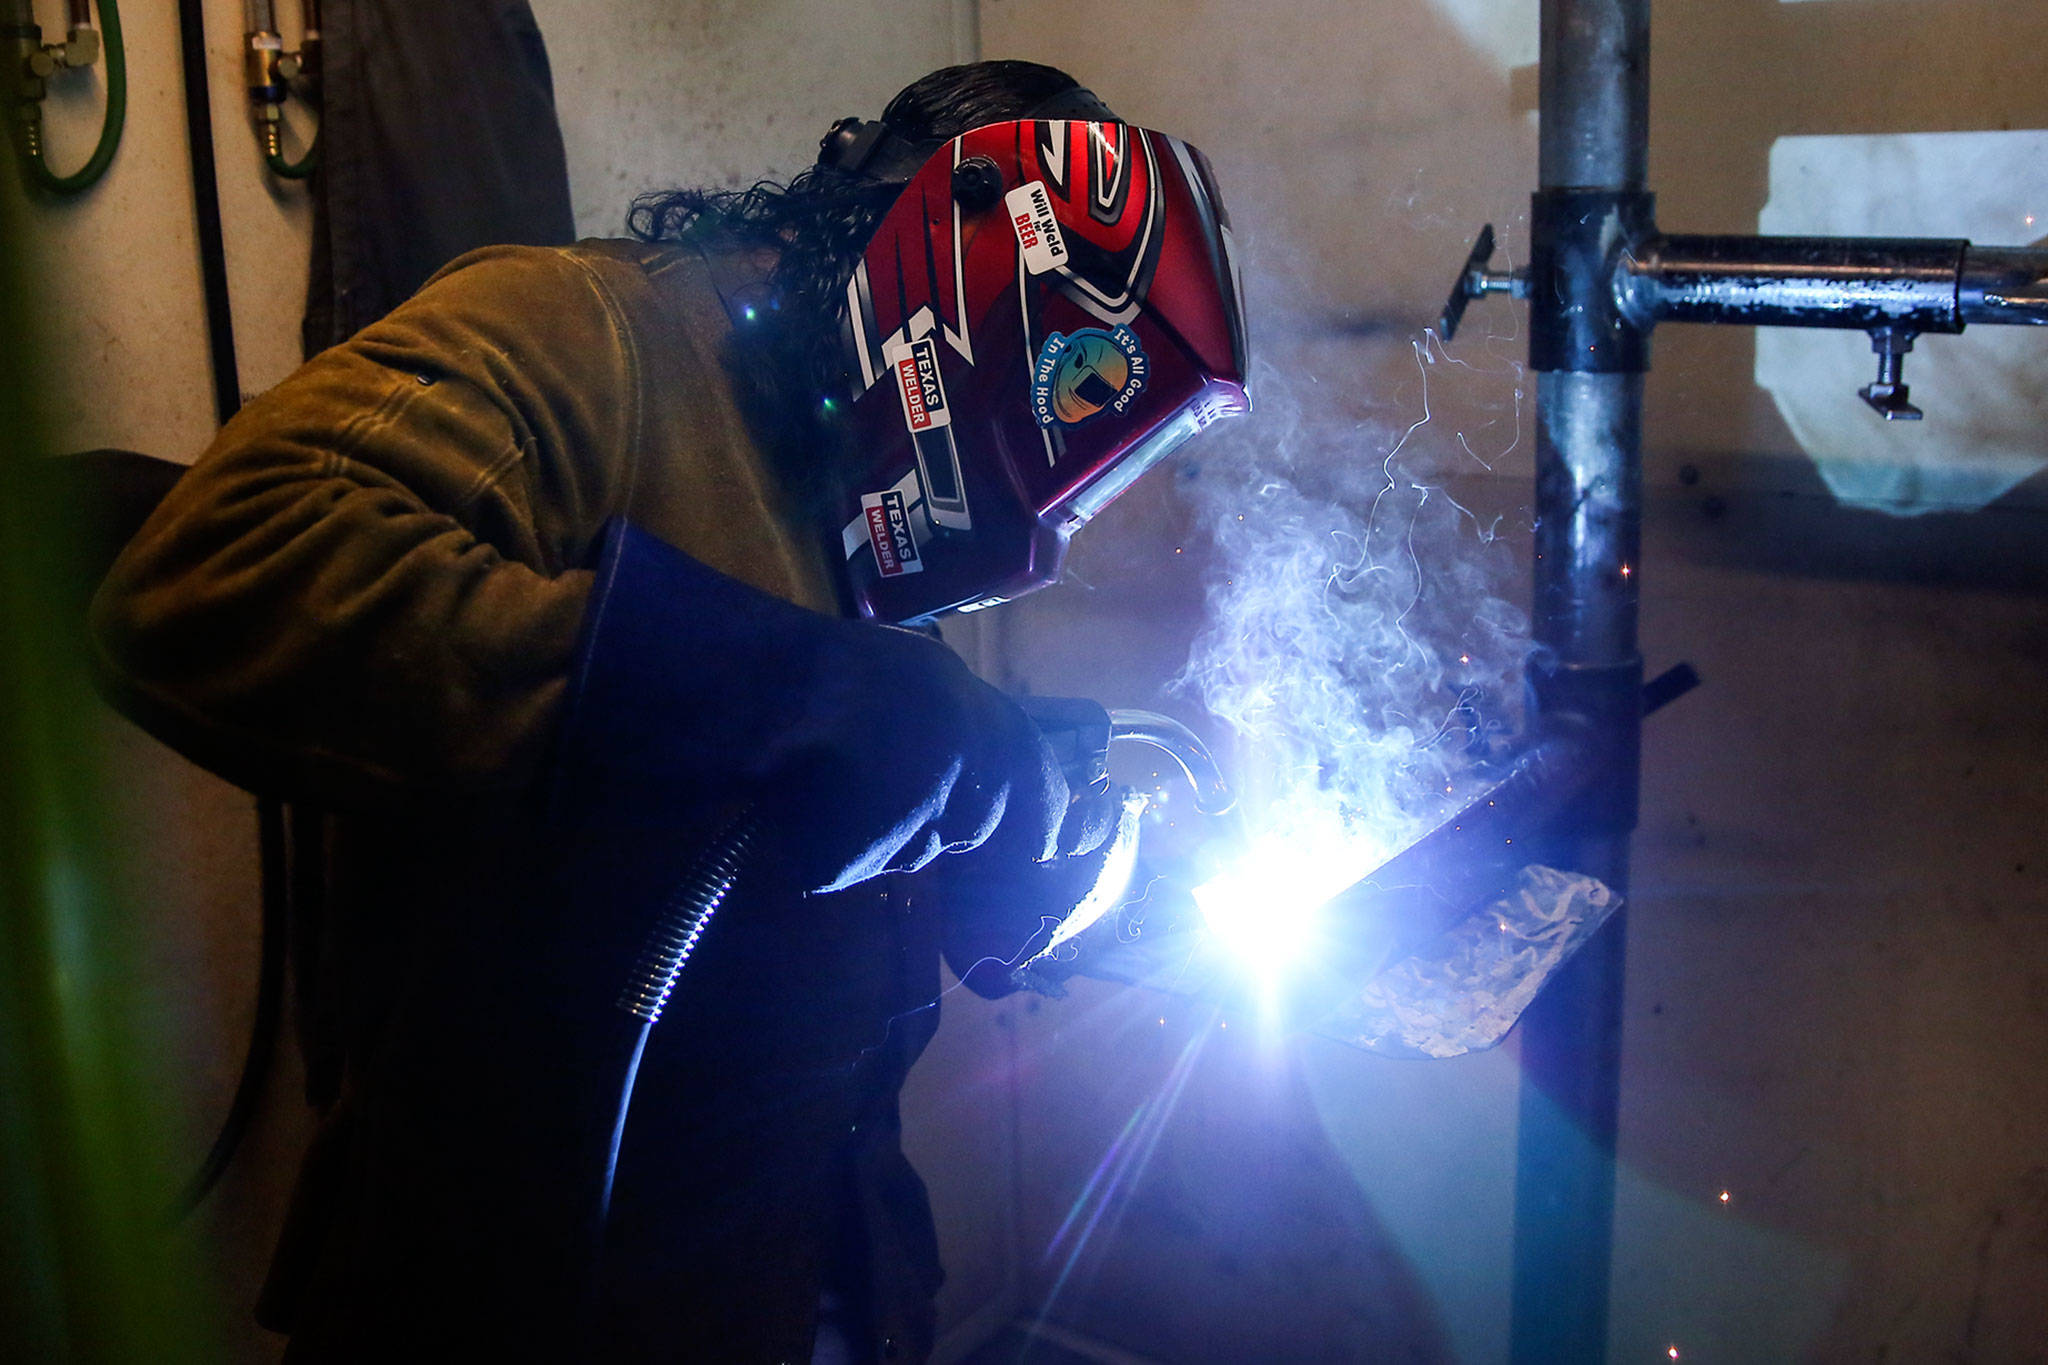 Joesph LaFond works on an assignment at the Advanced Manufacturing Training & Education Center at Everett Community College. (Kevin Clark / The Herald)